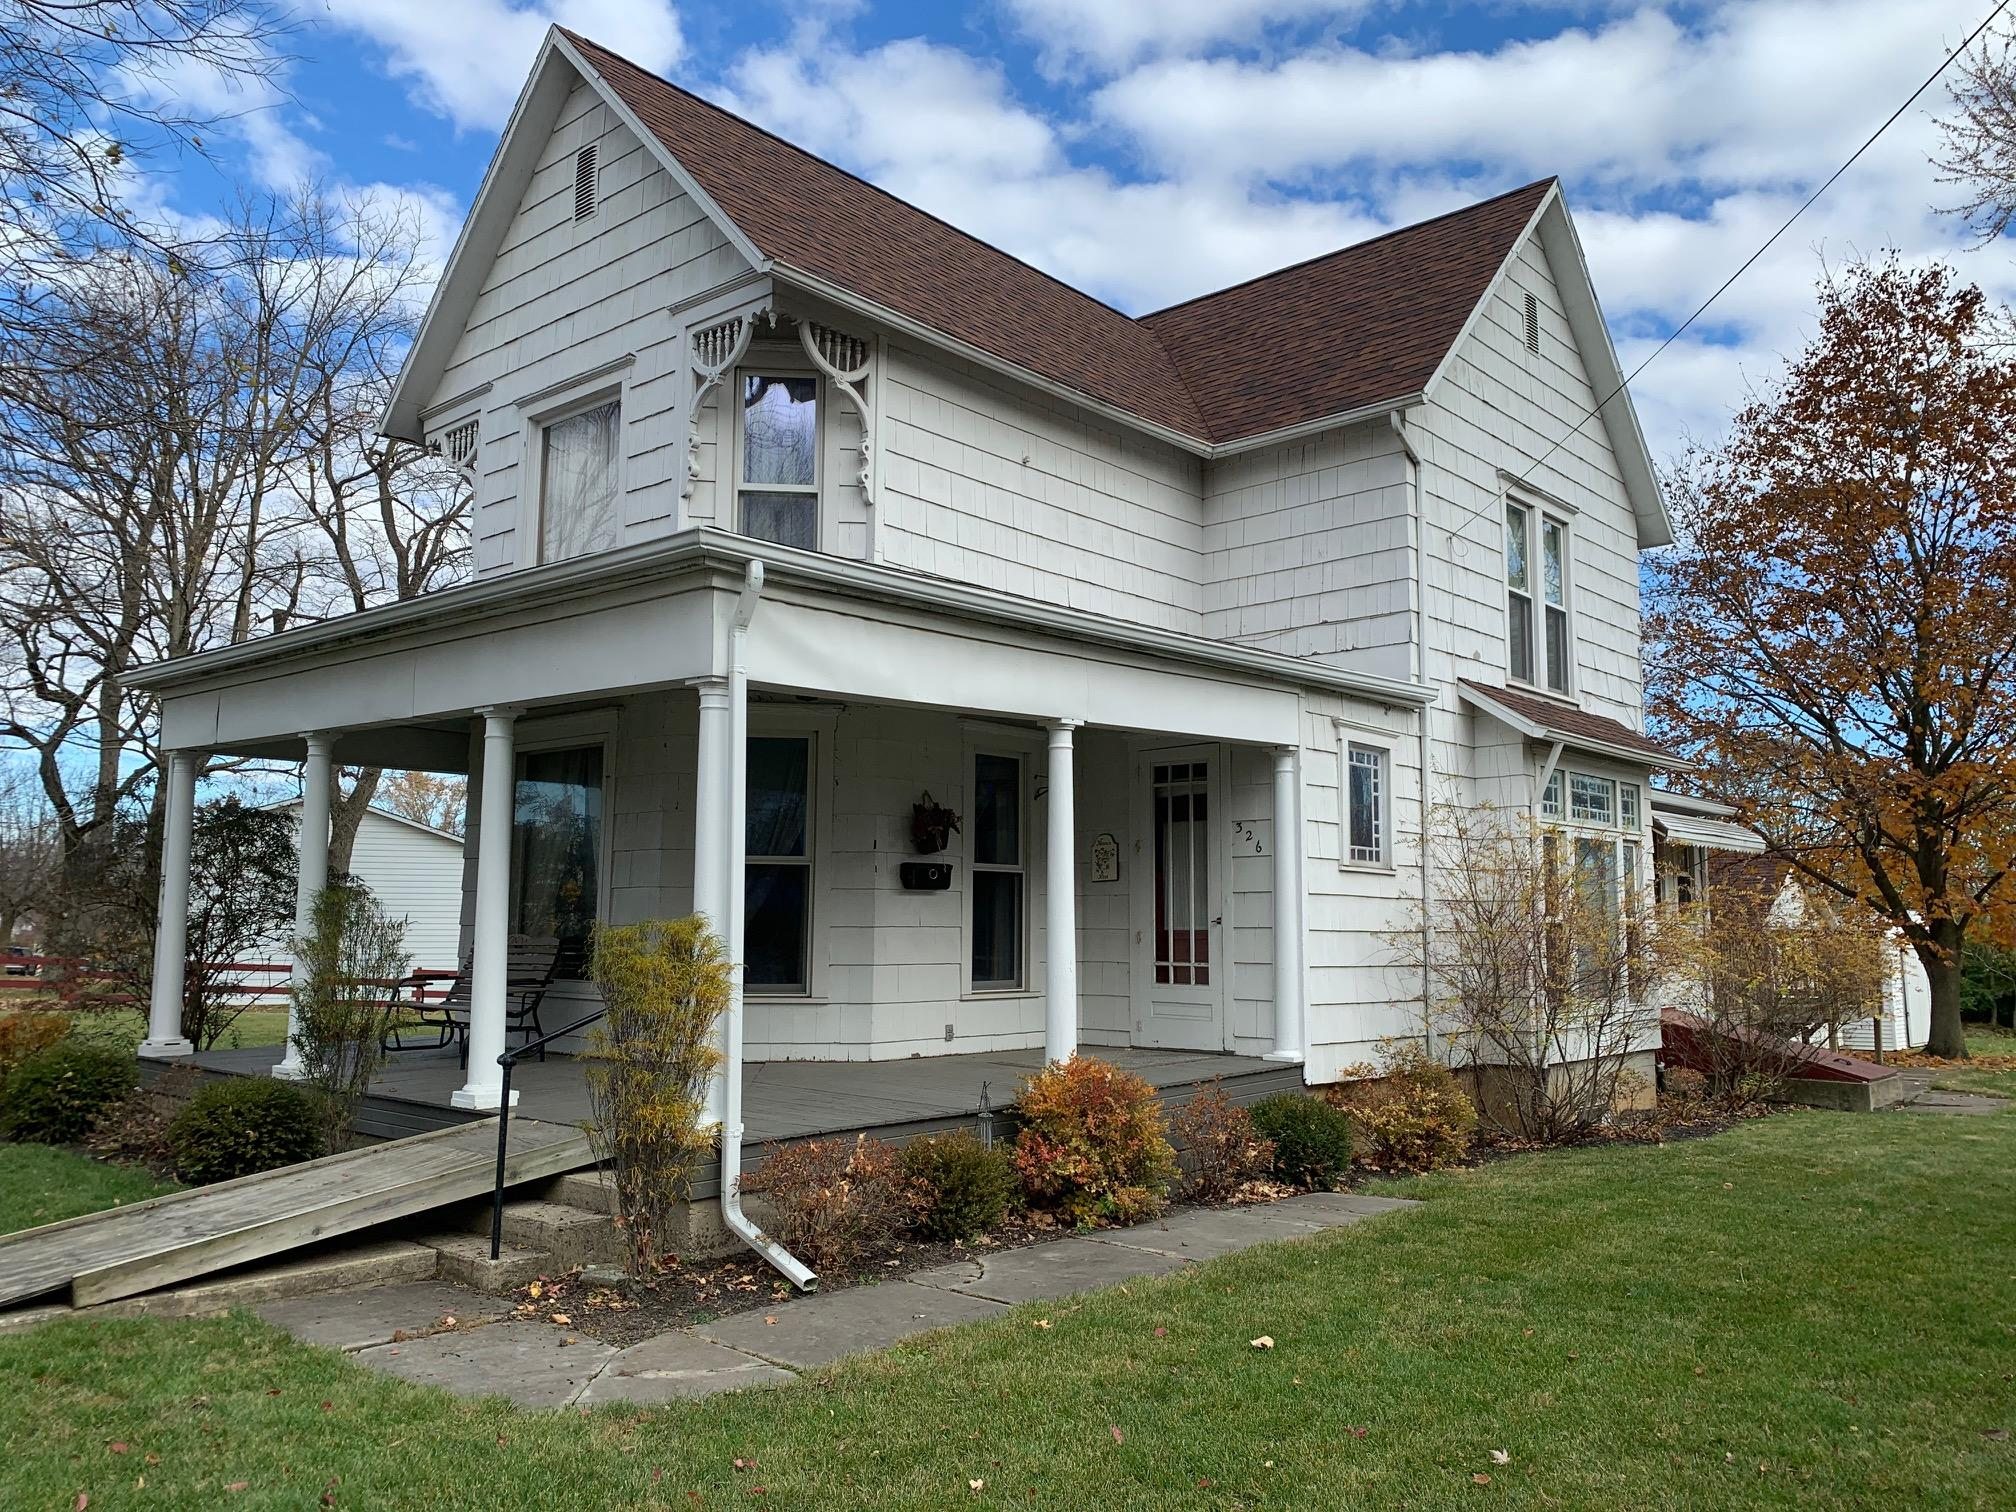 326 N Front Street Property Photo - Saint Marys, OH real estate listing